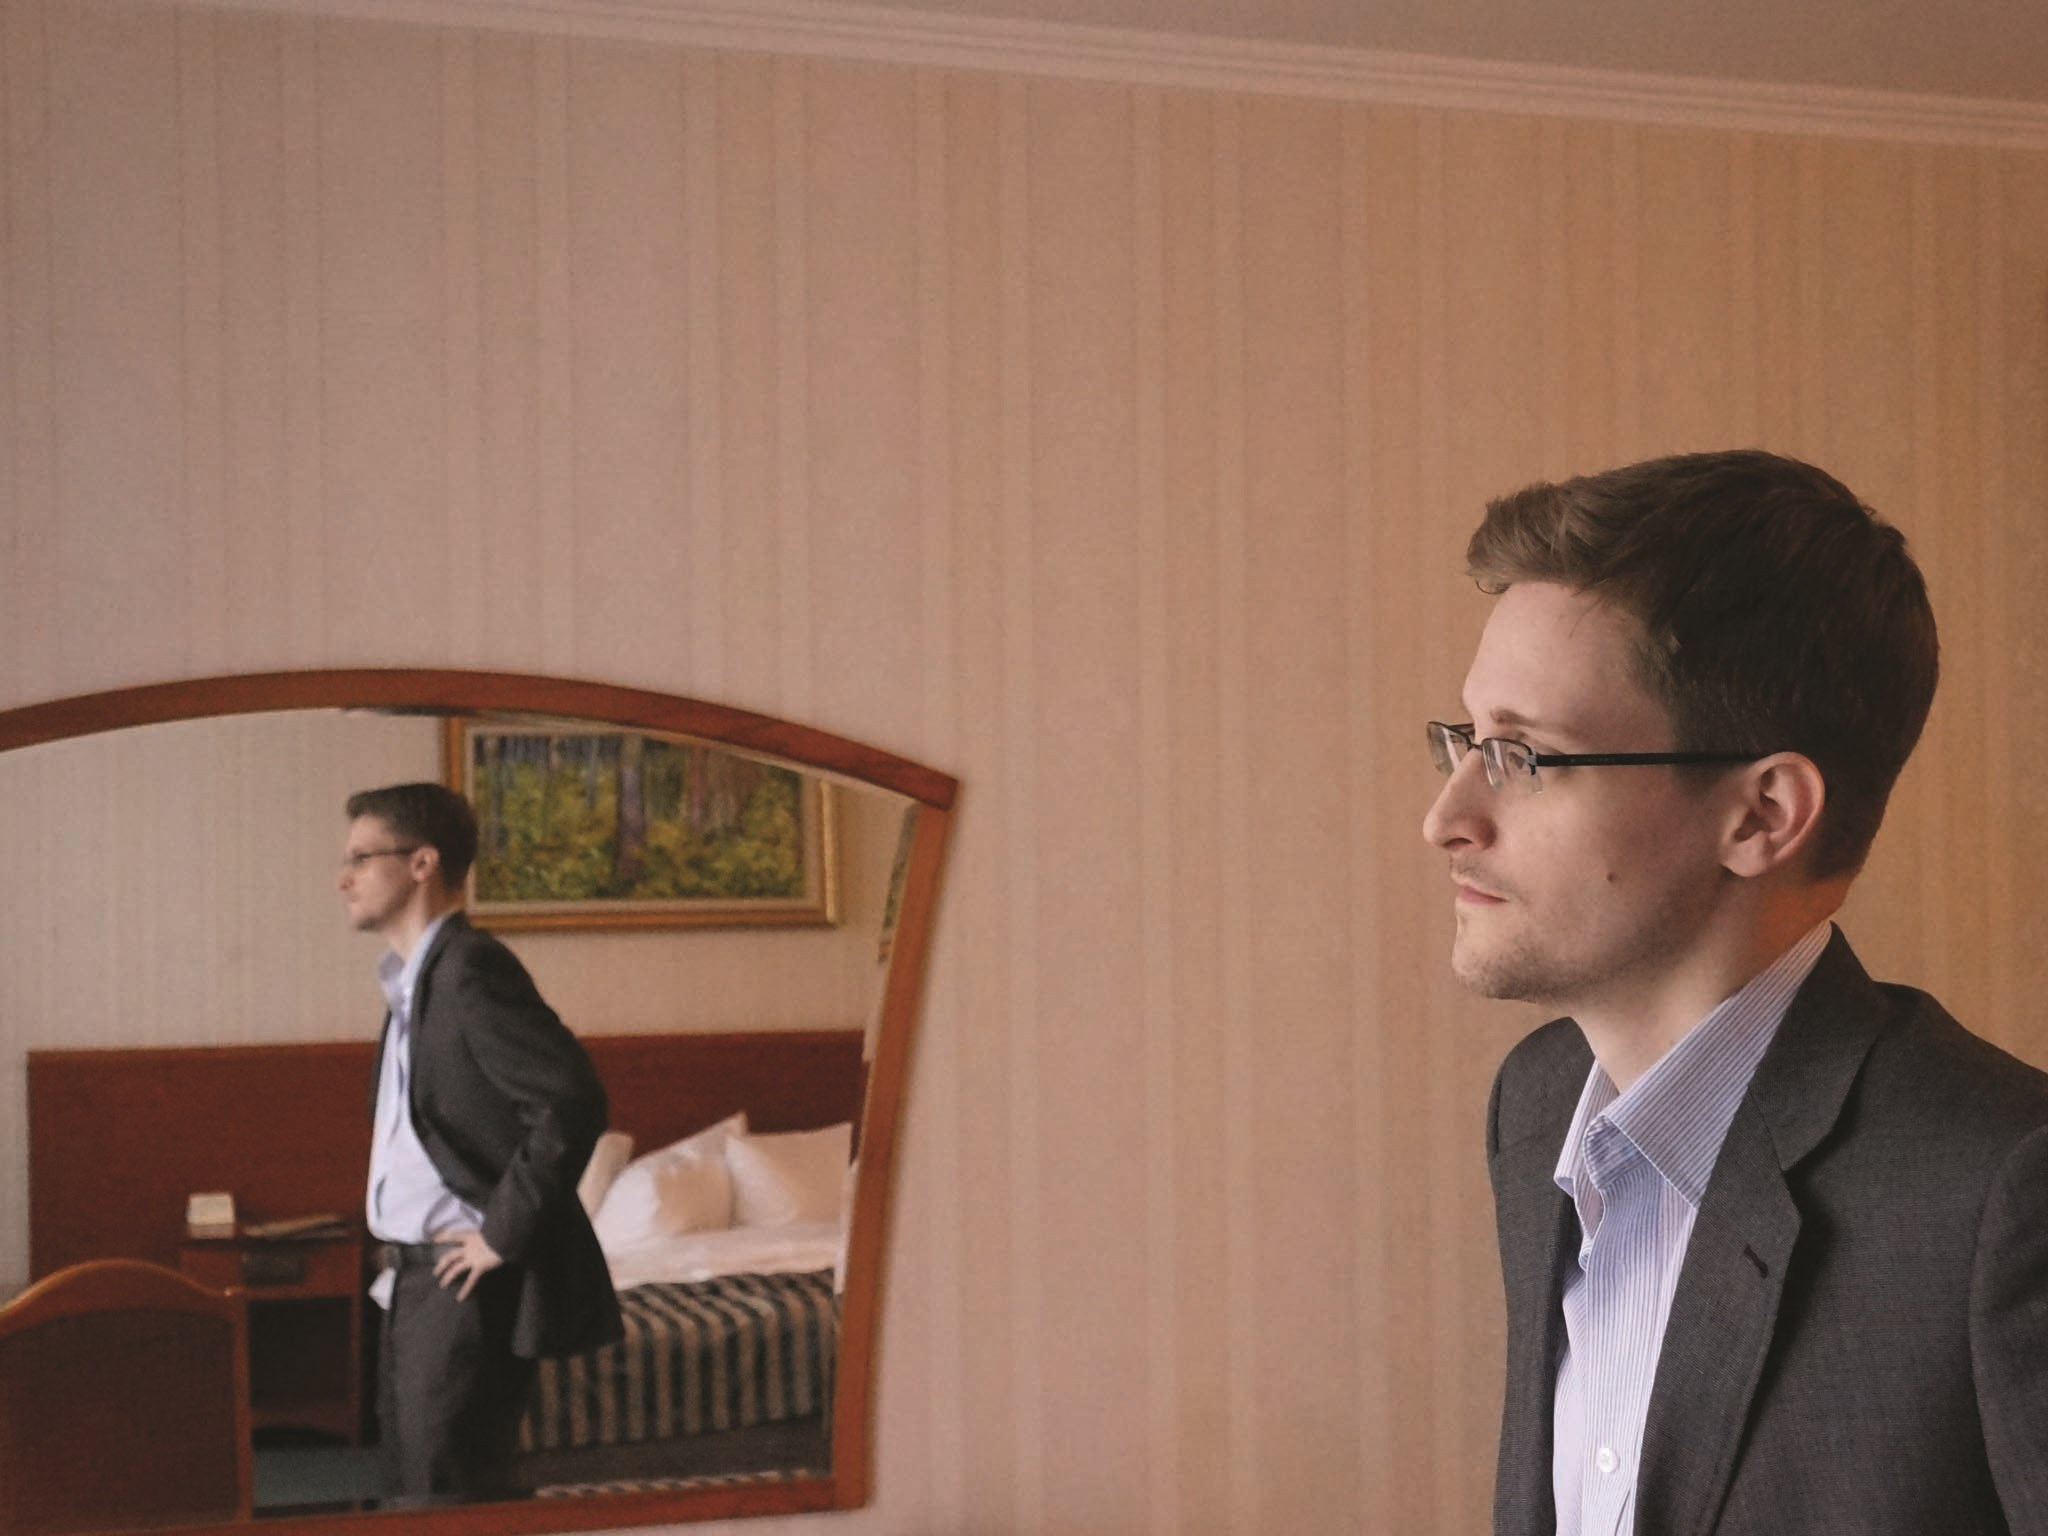 Snowden's forgotten legacy - highlighting insider threat